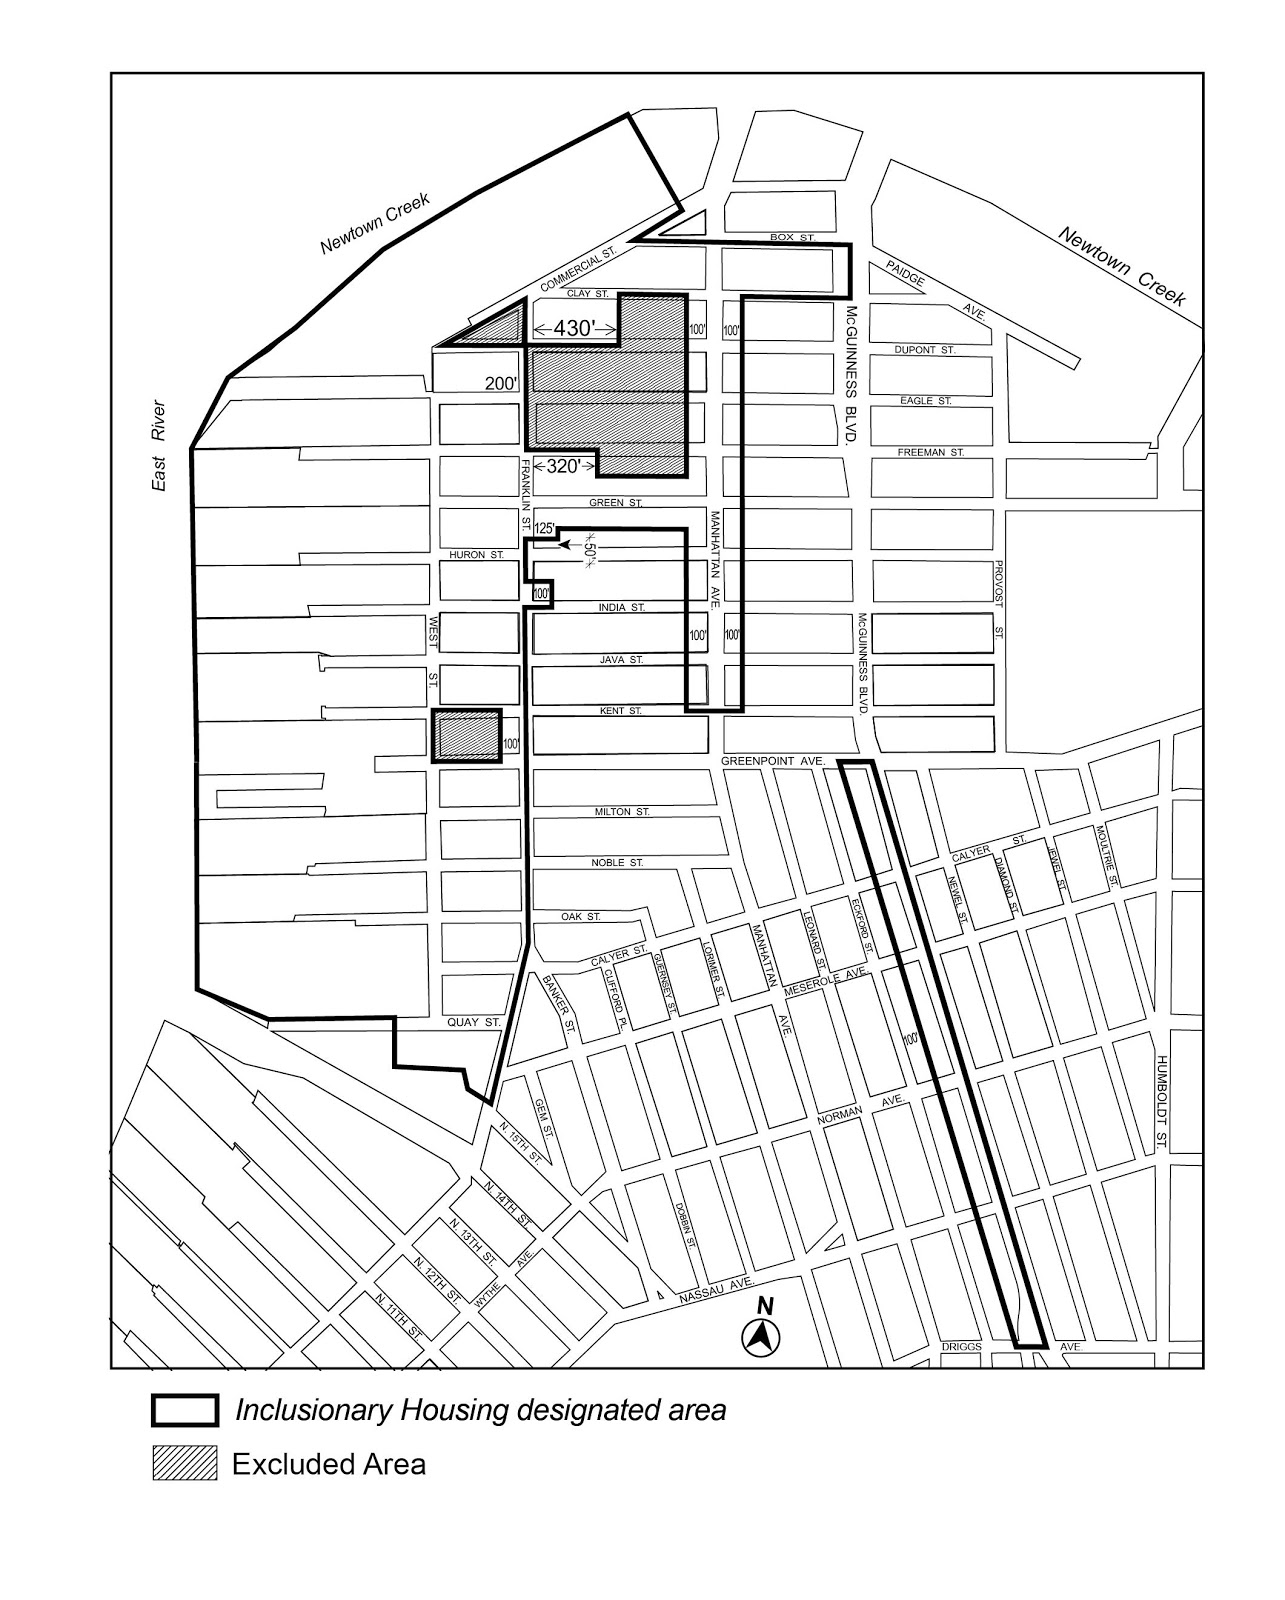 Zoning Resolutions F-Inclusionary Housing Designated Areas and Mandatory Inclusionary Housing Areas_2.36